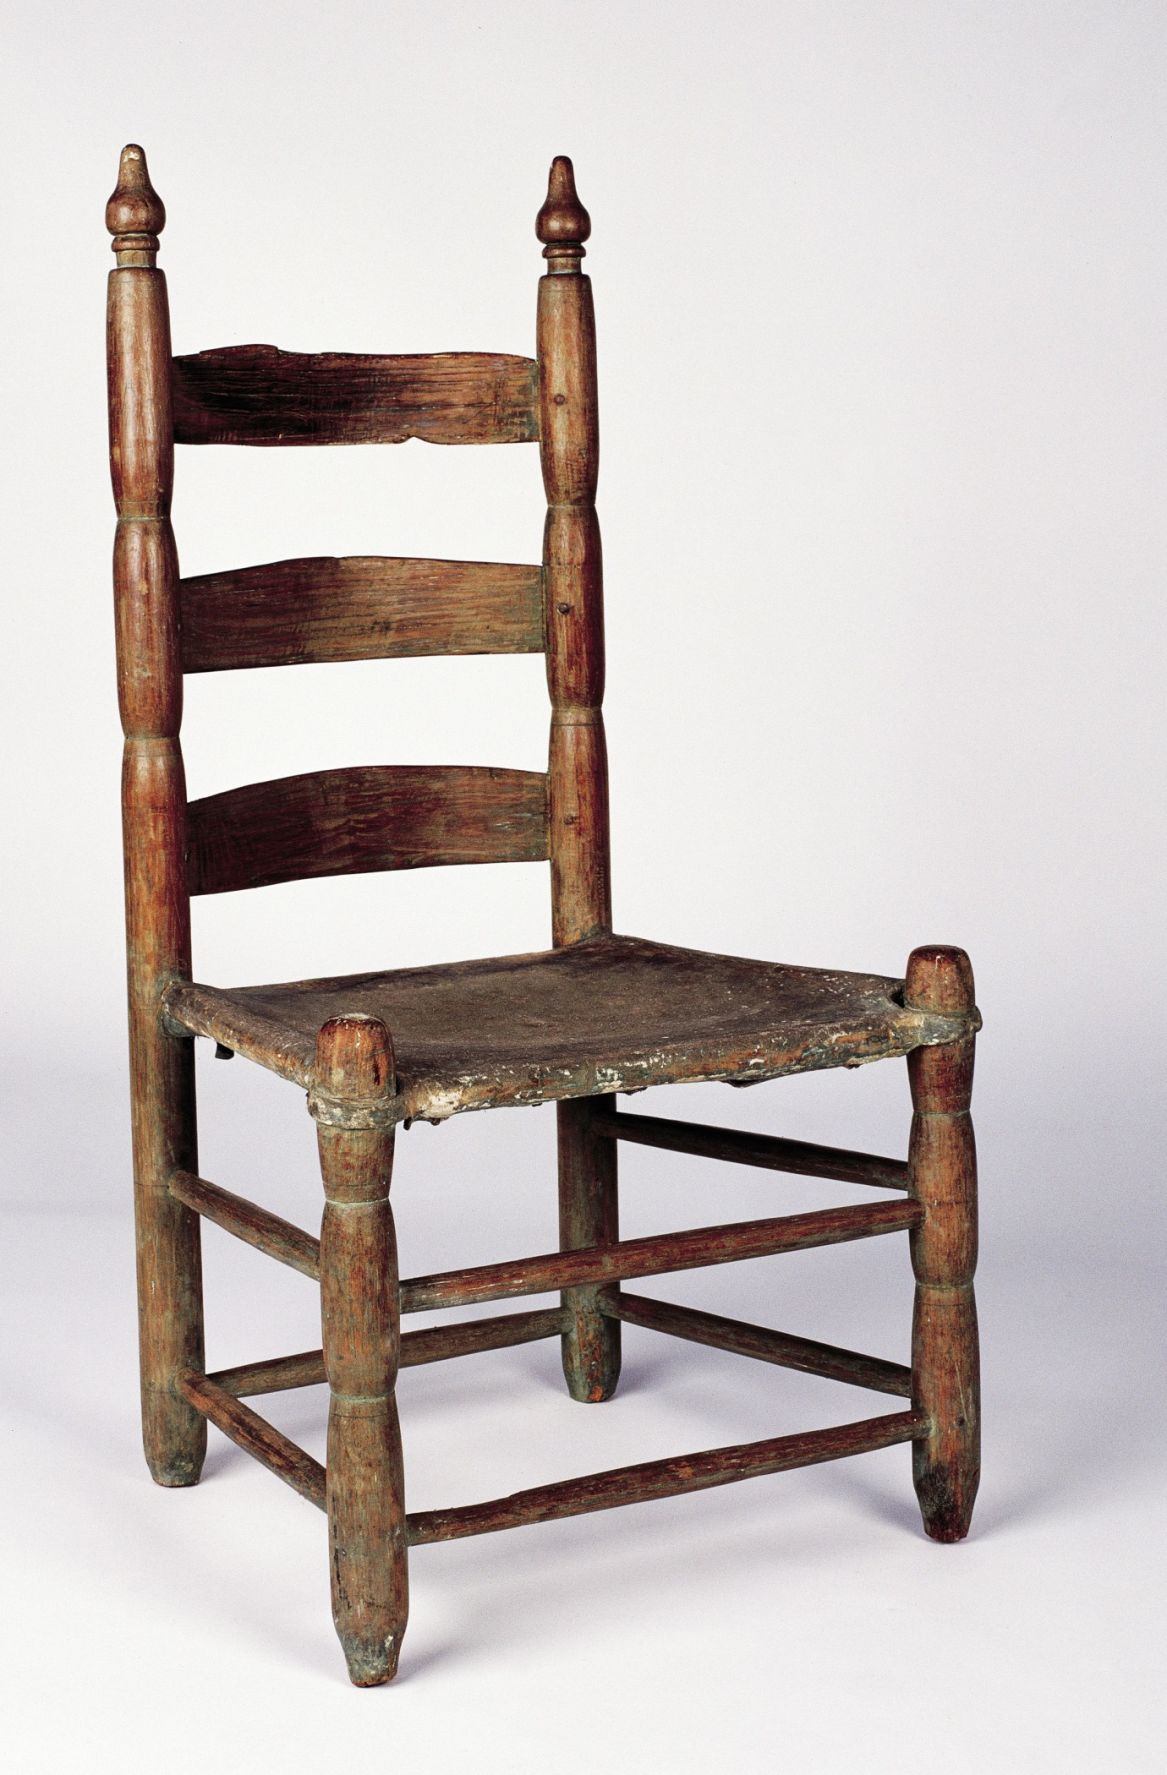 CONTRIBUTED PHOTO COURTESY OF WAYNE AND CHERYL STROMEYER, PHOTO BY JIM  ZIETZ / THNOC -- Acadian-style ladder-back side chair, 1780-1820, made of  hardwood ... - For Lovers Of Antique Furniture, Two Very Different Styles Home